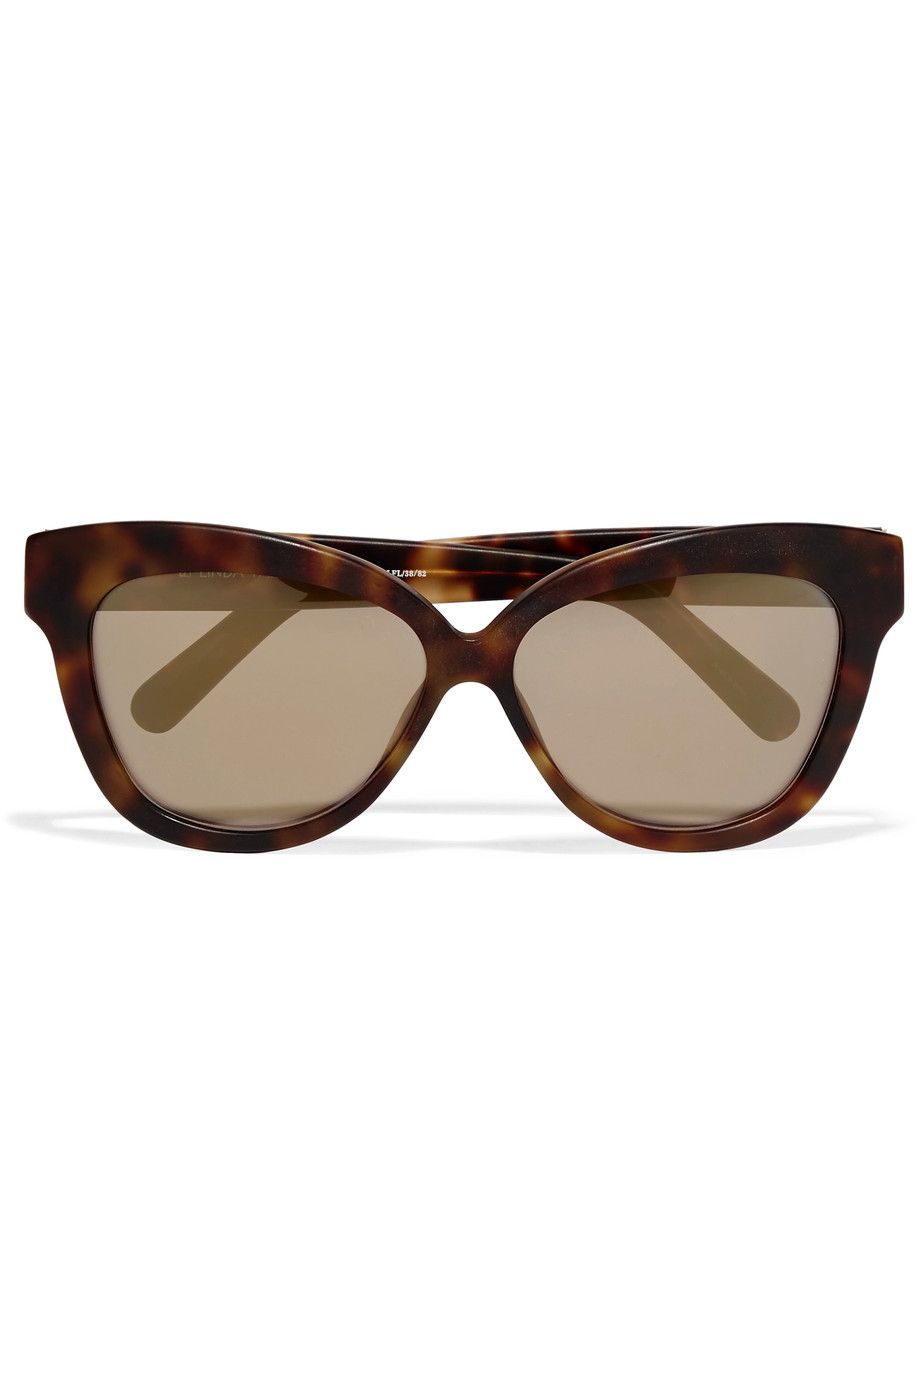 5a2c3bd0f43f Linda Farrow Cat-eye matte-acetate mirrored sunglasses